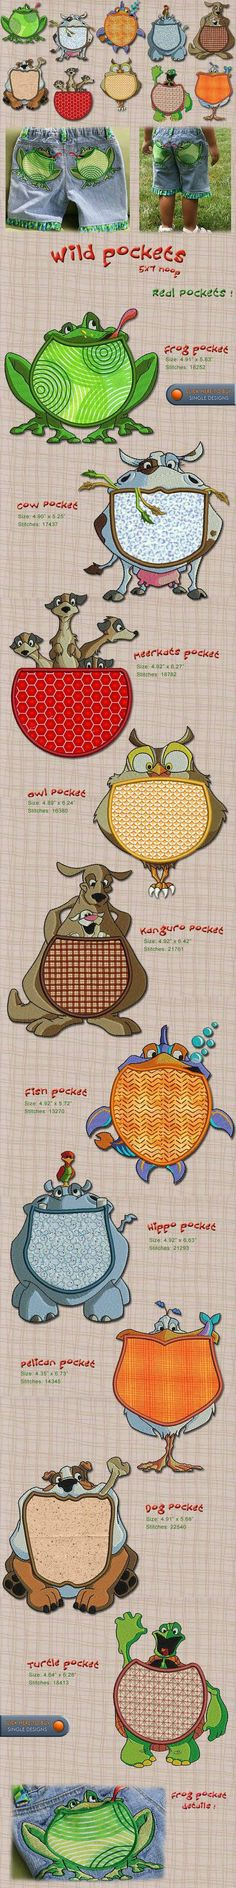 Animals Embroidery Designs Free Embroidery Design Patterns Applique: